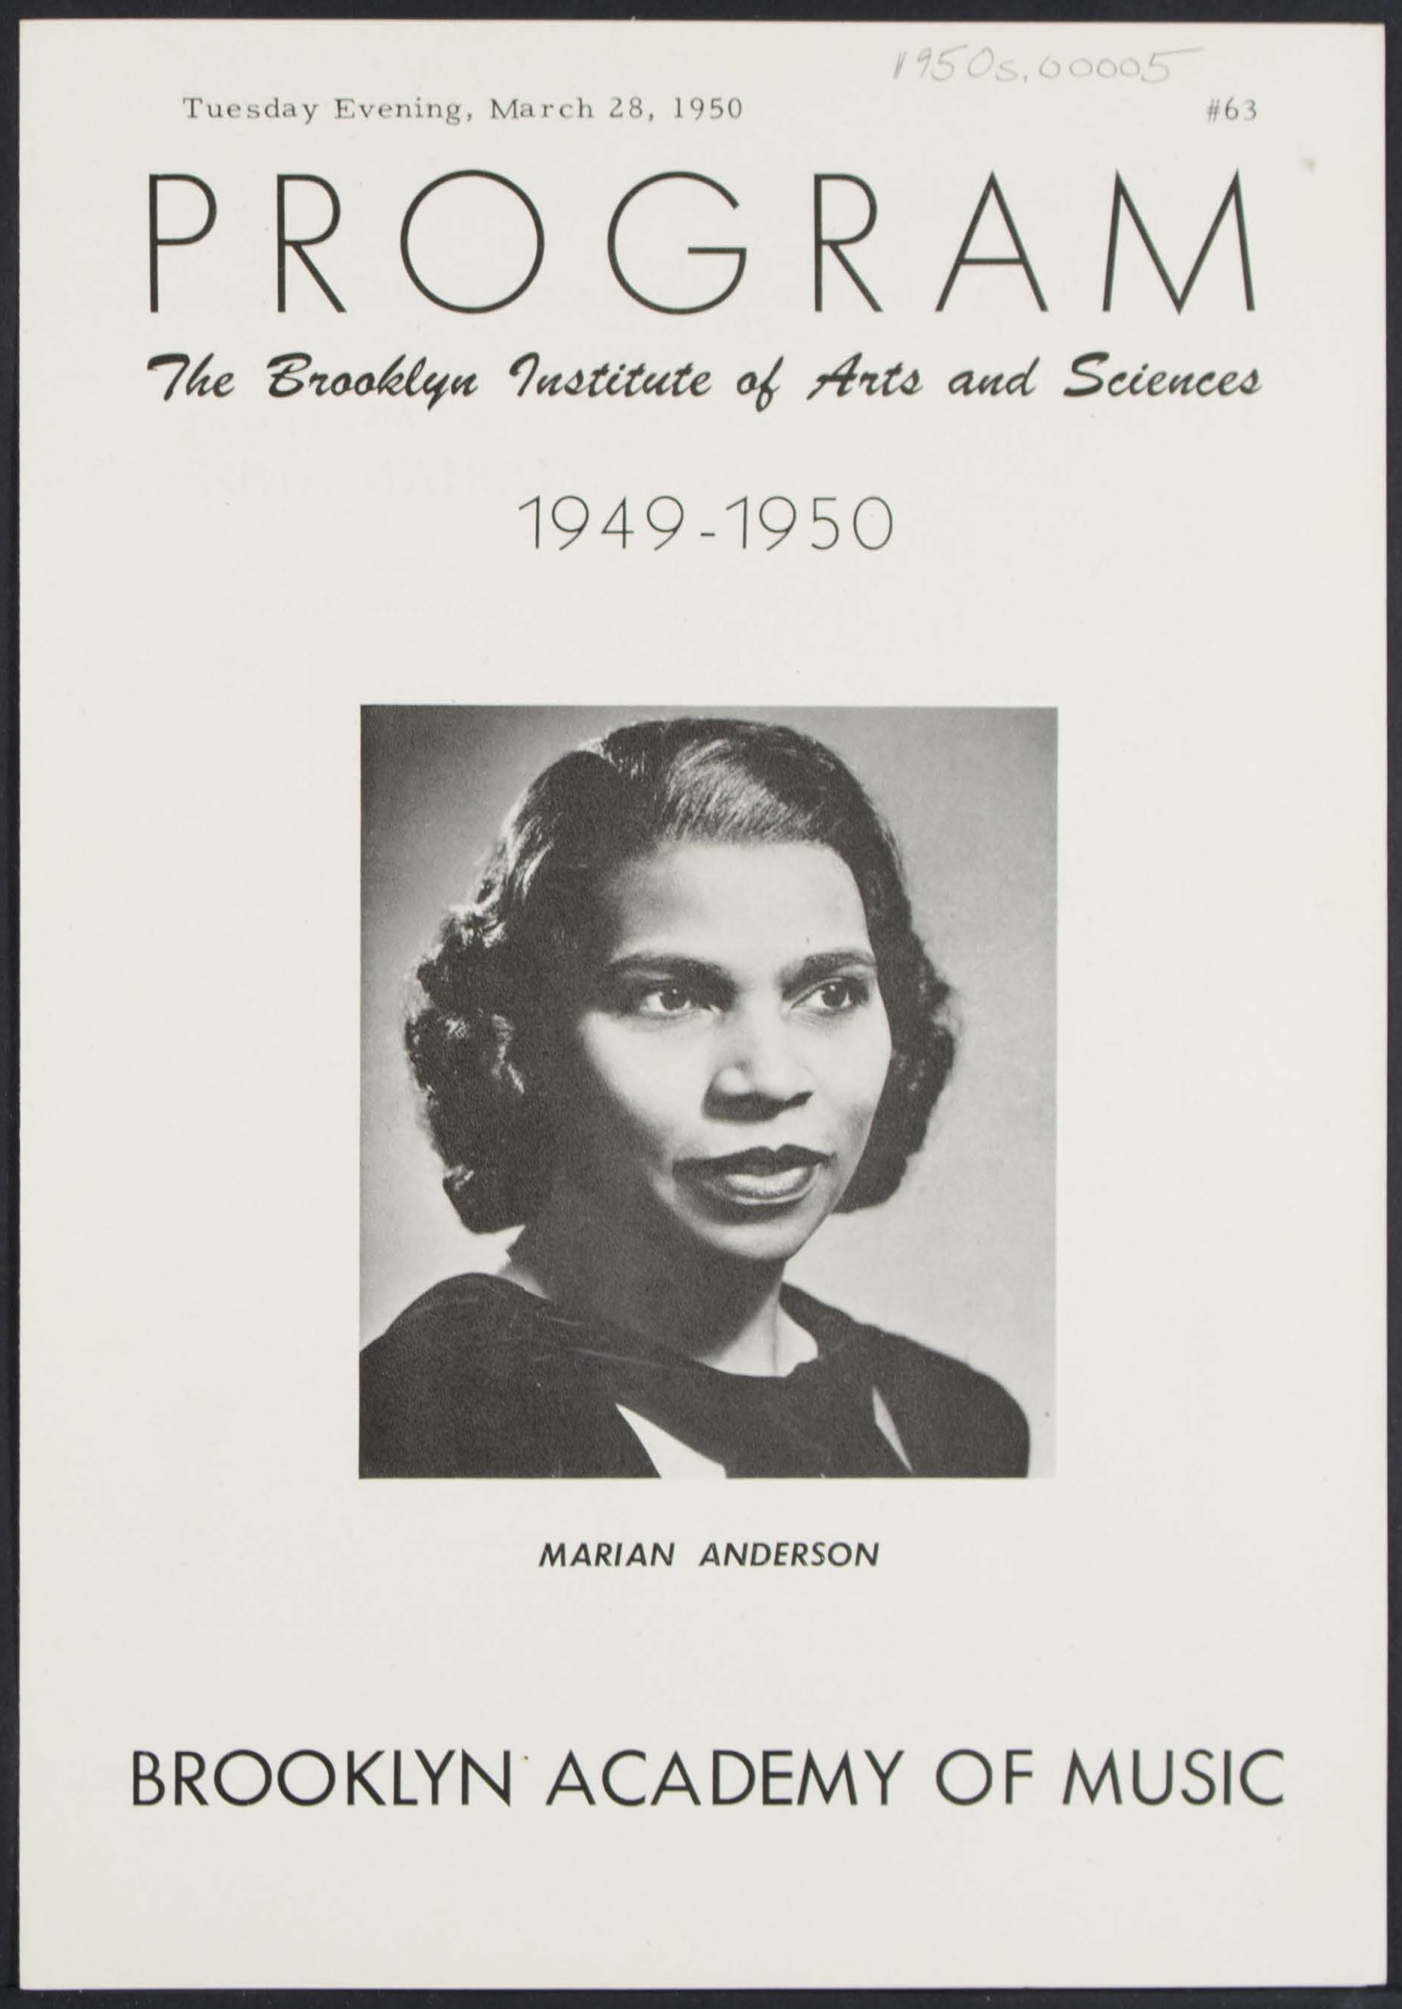 Brooklyn Academy of Music Puts Online 70,000 Objects Documenting the History of the Performing Arts Artes & contextos Marion Anderson